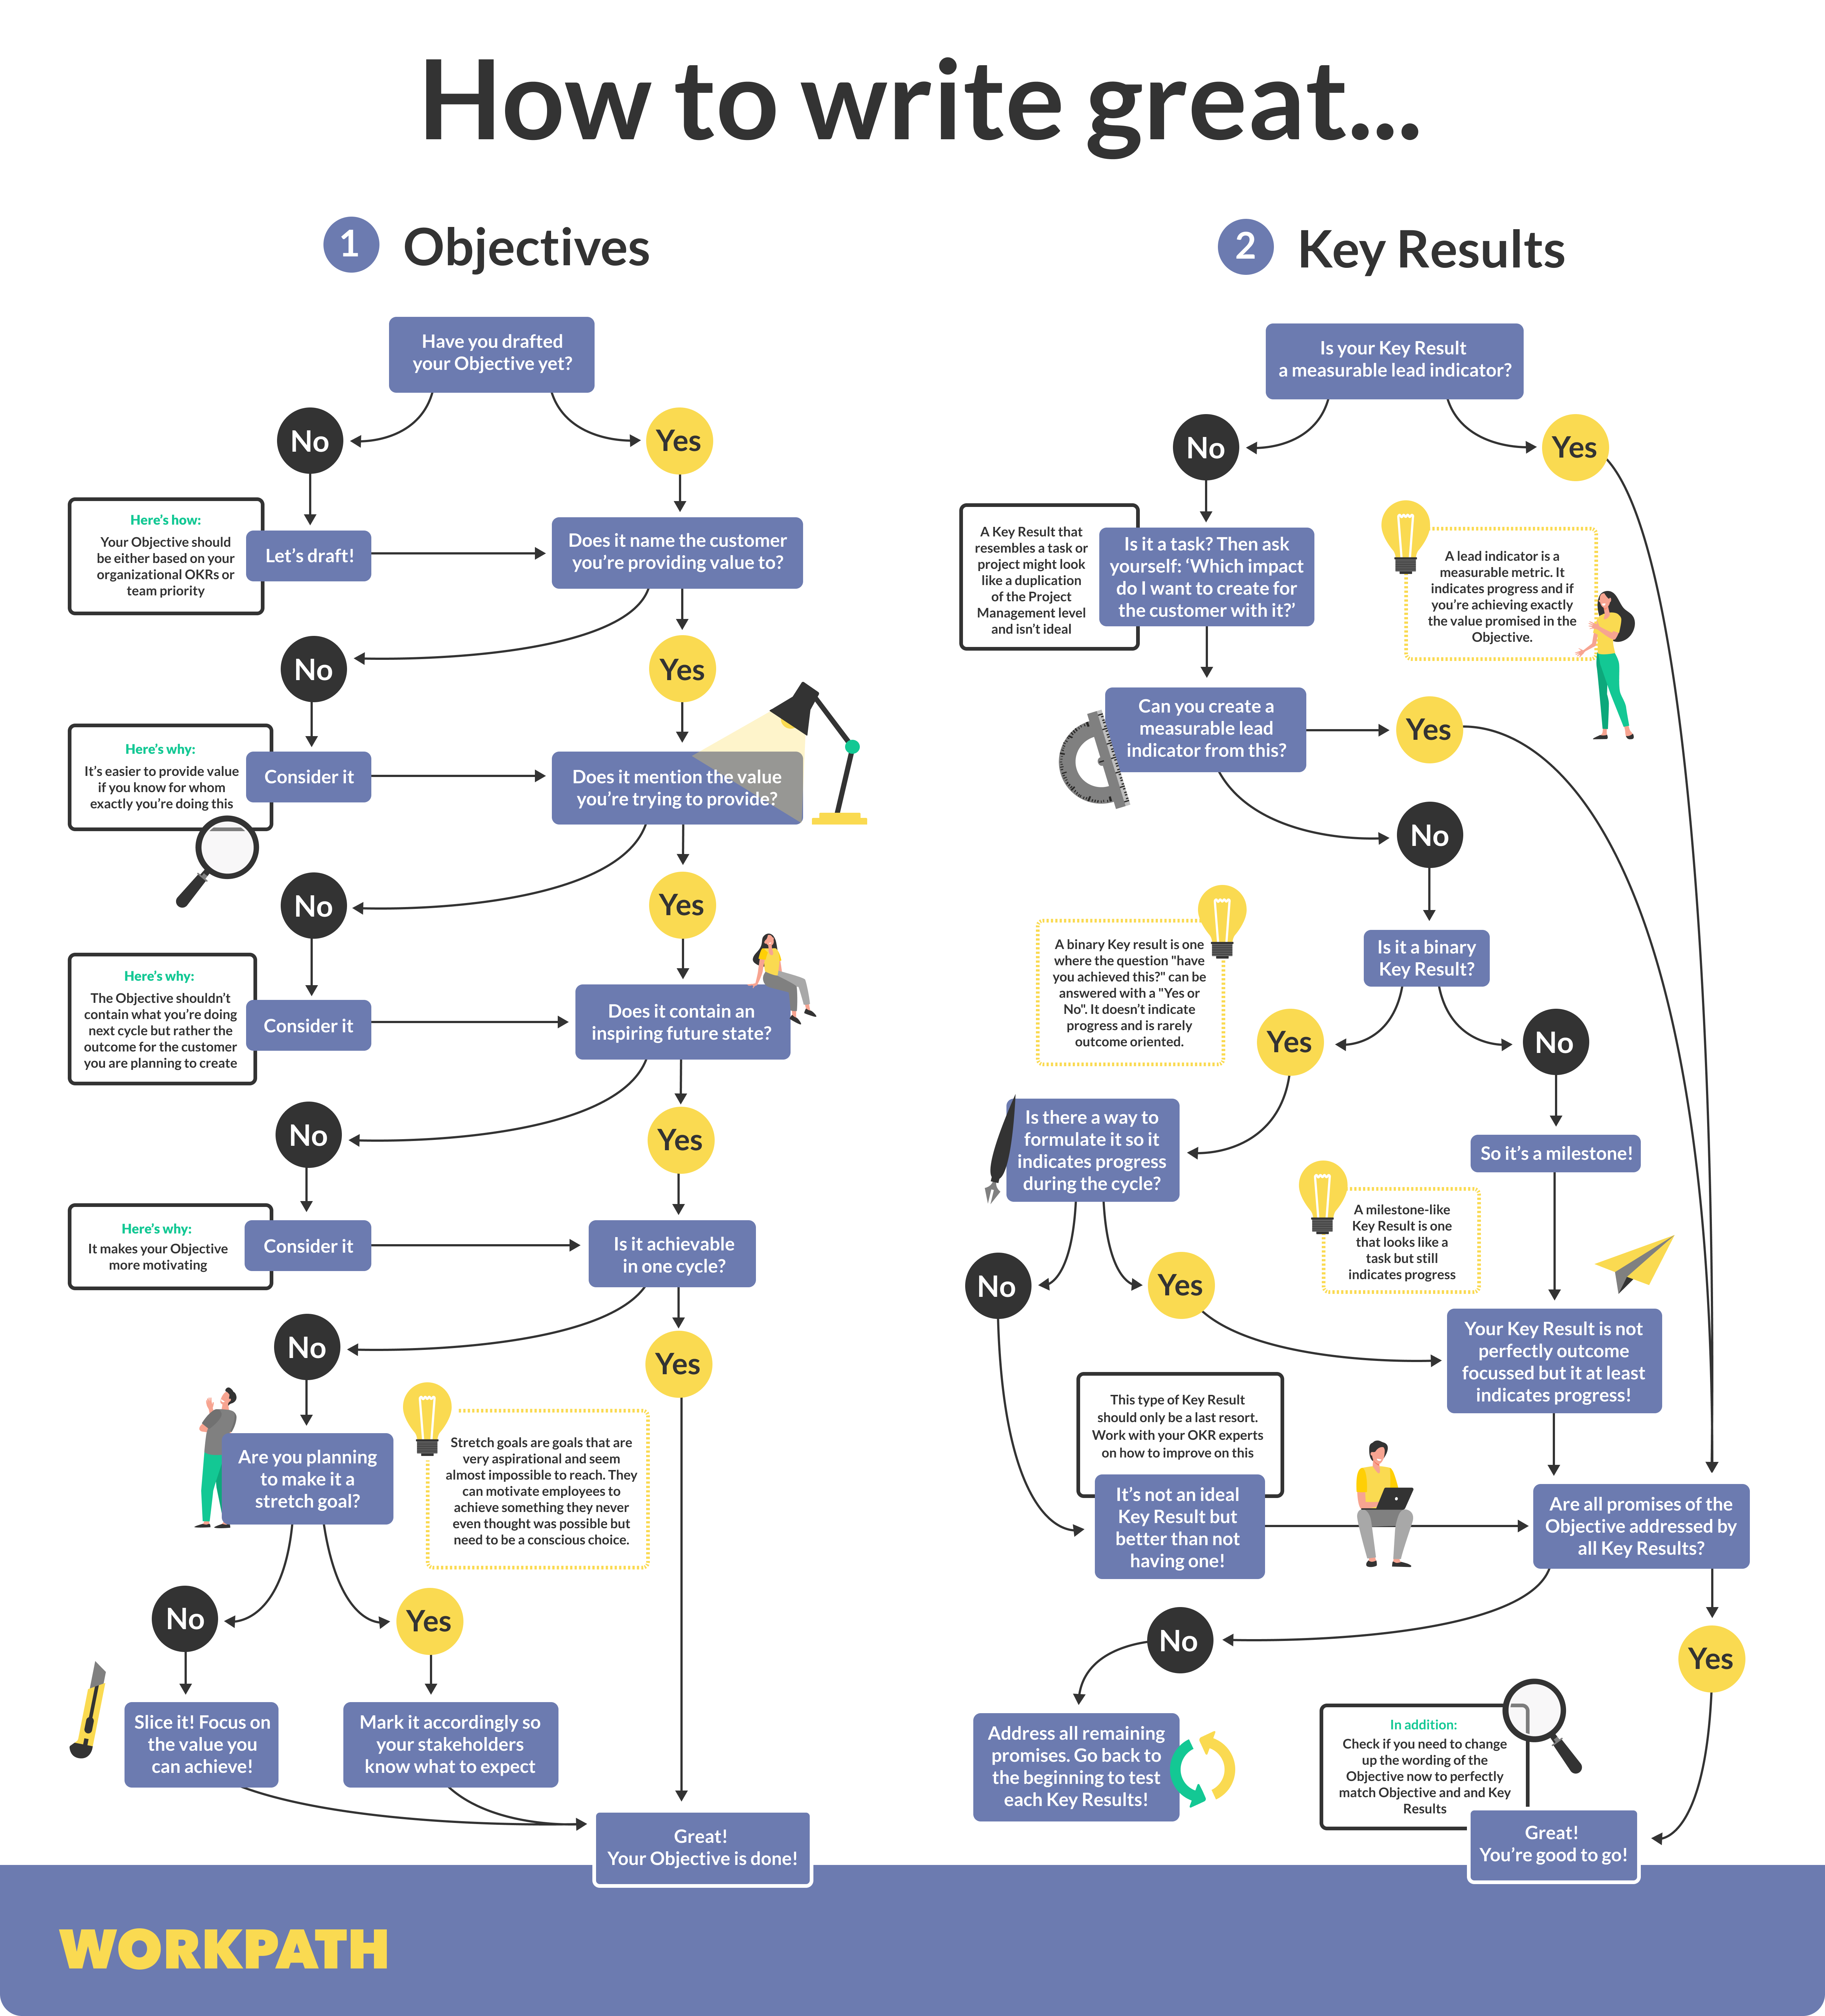 How to write great OKRs